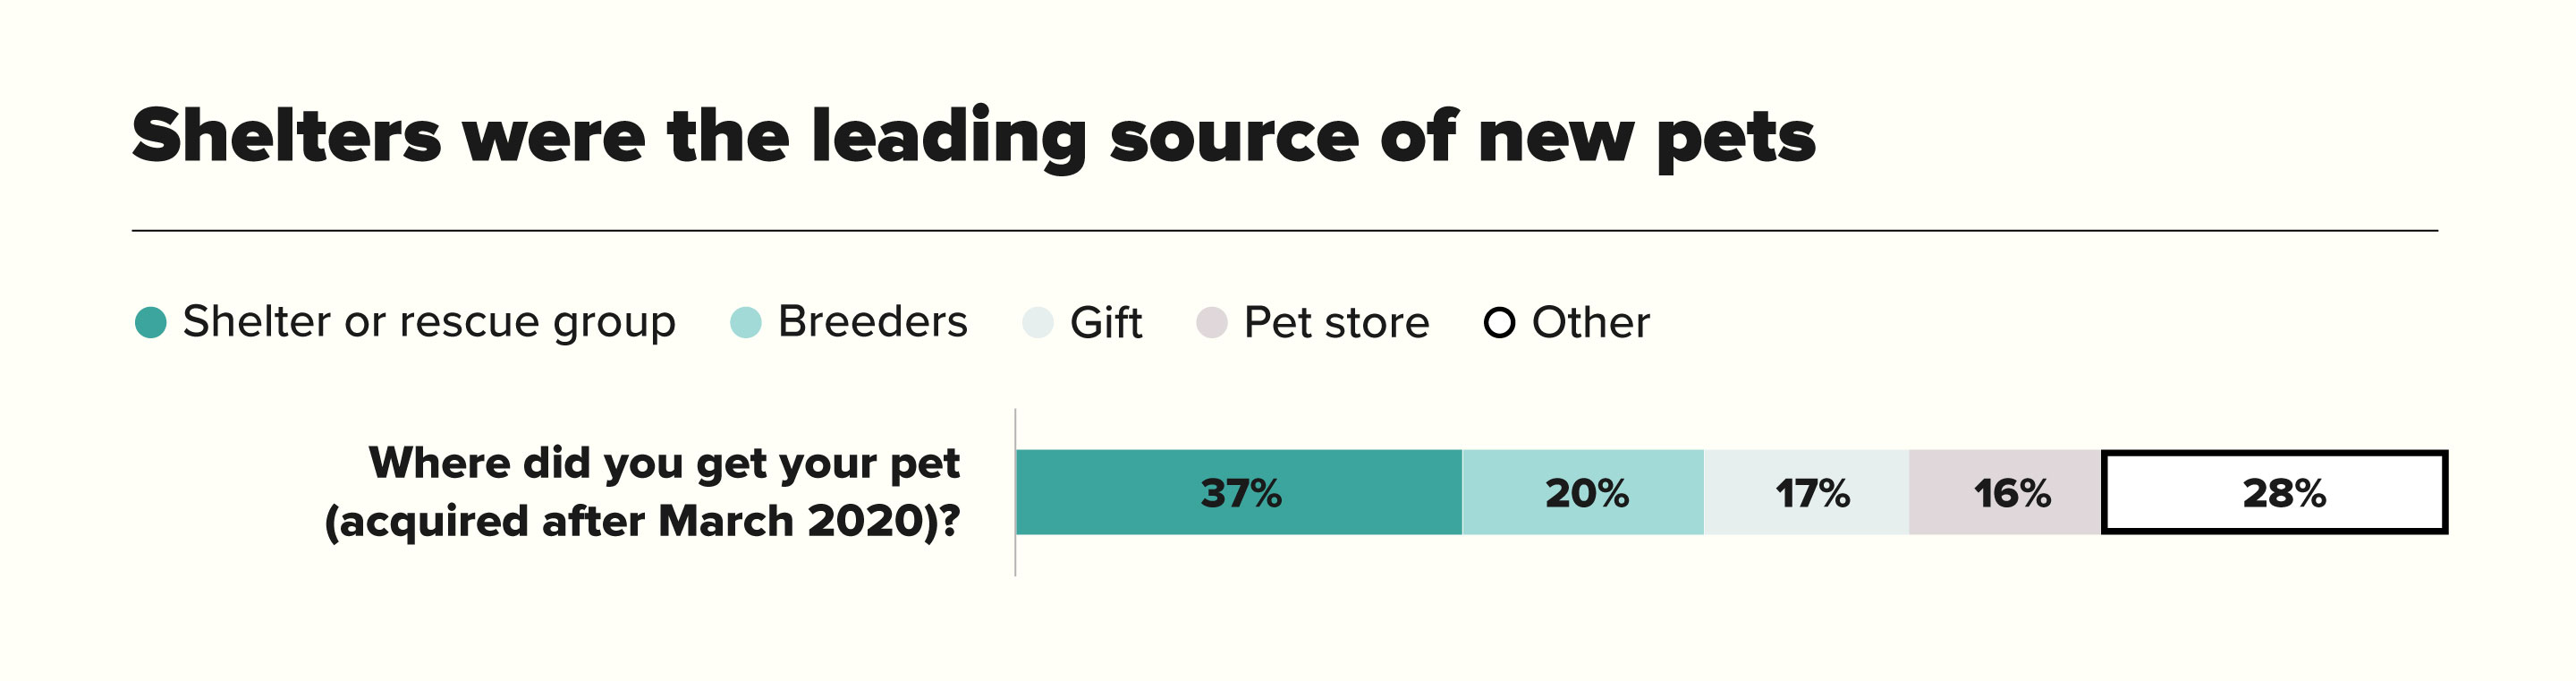 Shelters Were The Leading Source Of New Pets Chart